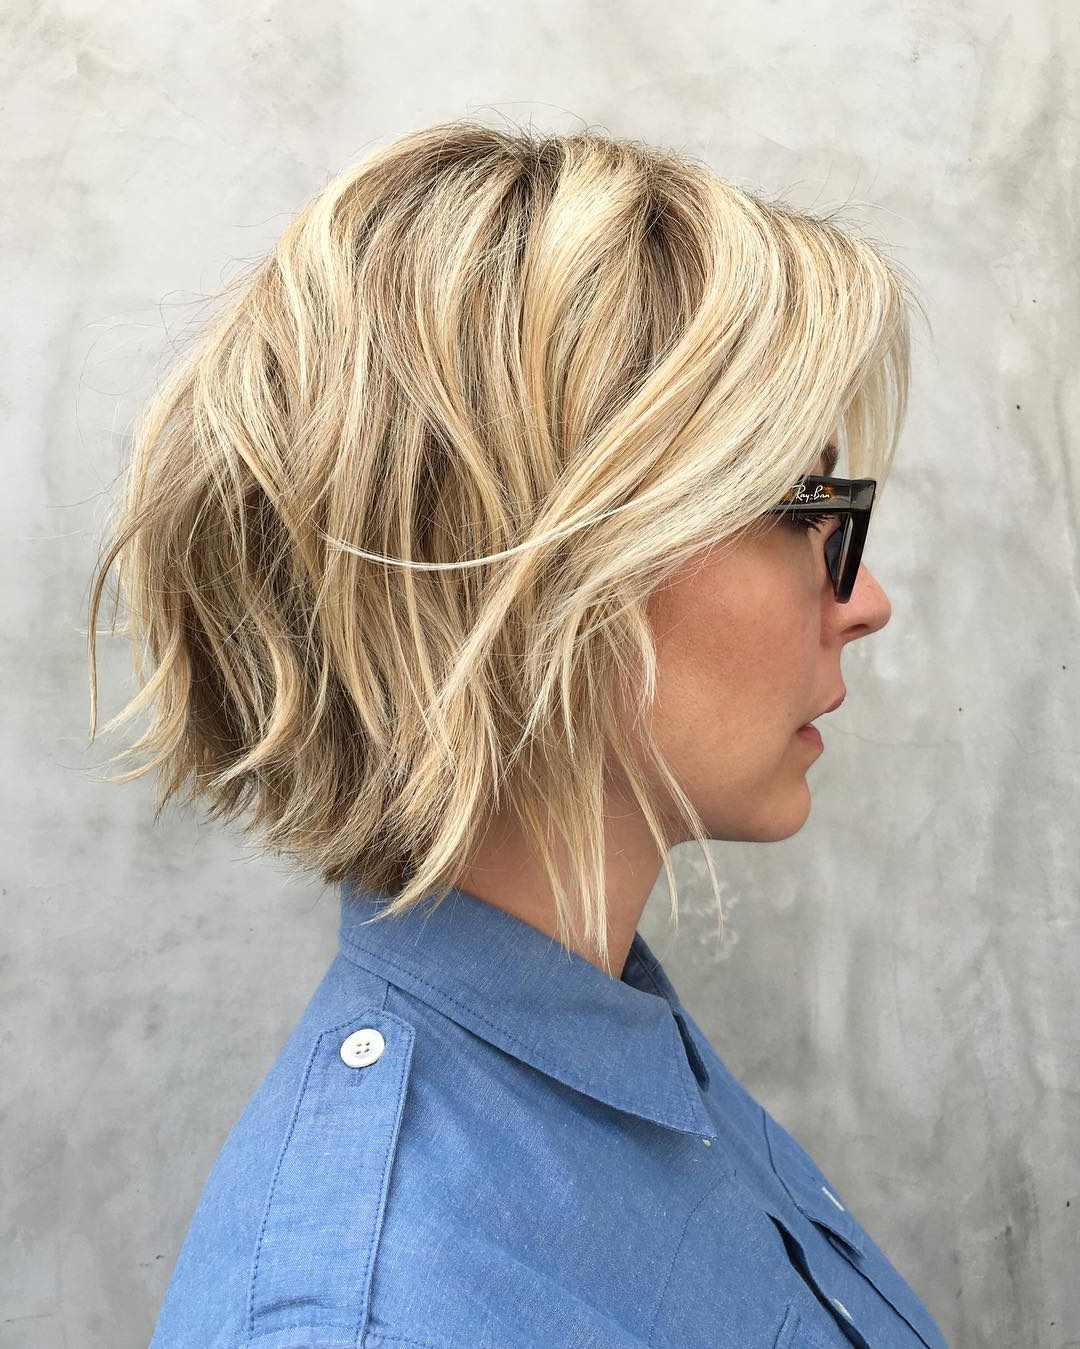 Shag Haircuts And Hairstyles In 2019 — Therighthairstyles Intended For Trendy Blonde Highlights Shaggy Haircuts (View 17 of 20)